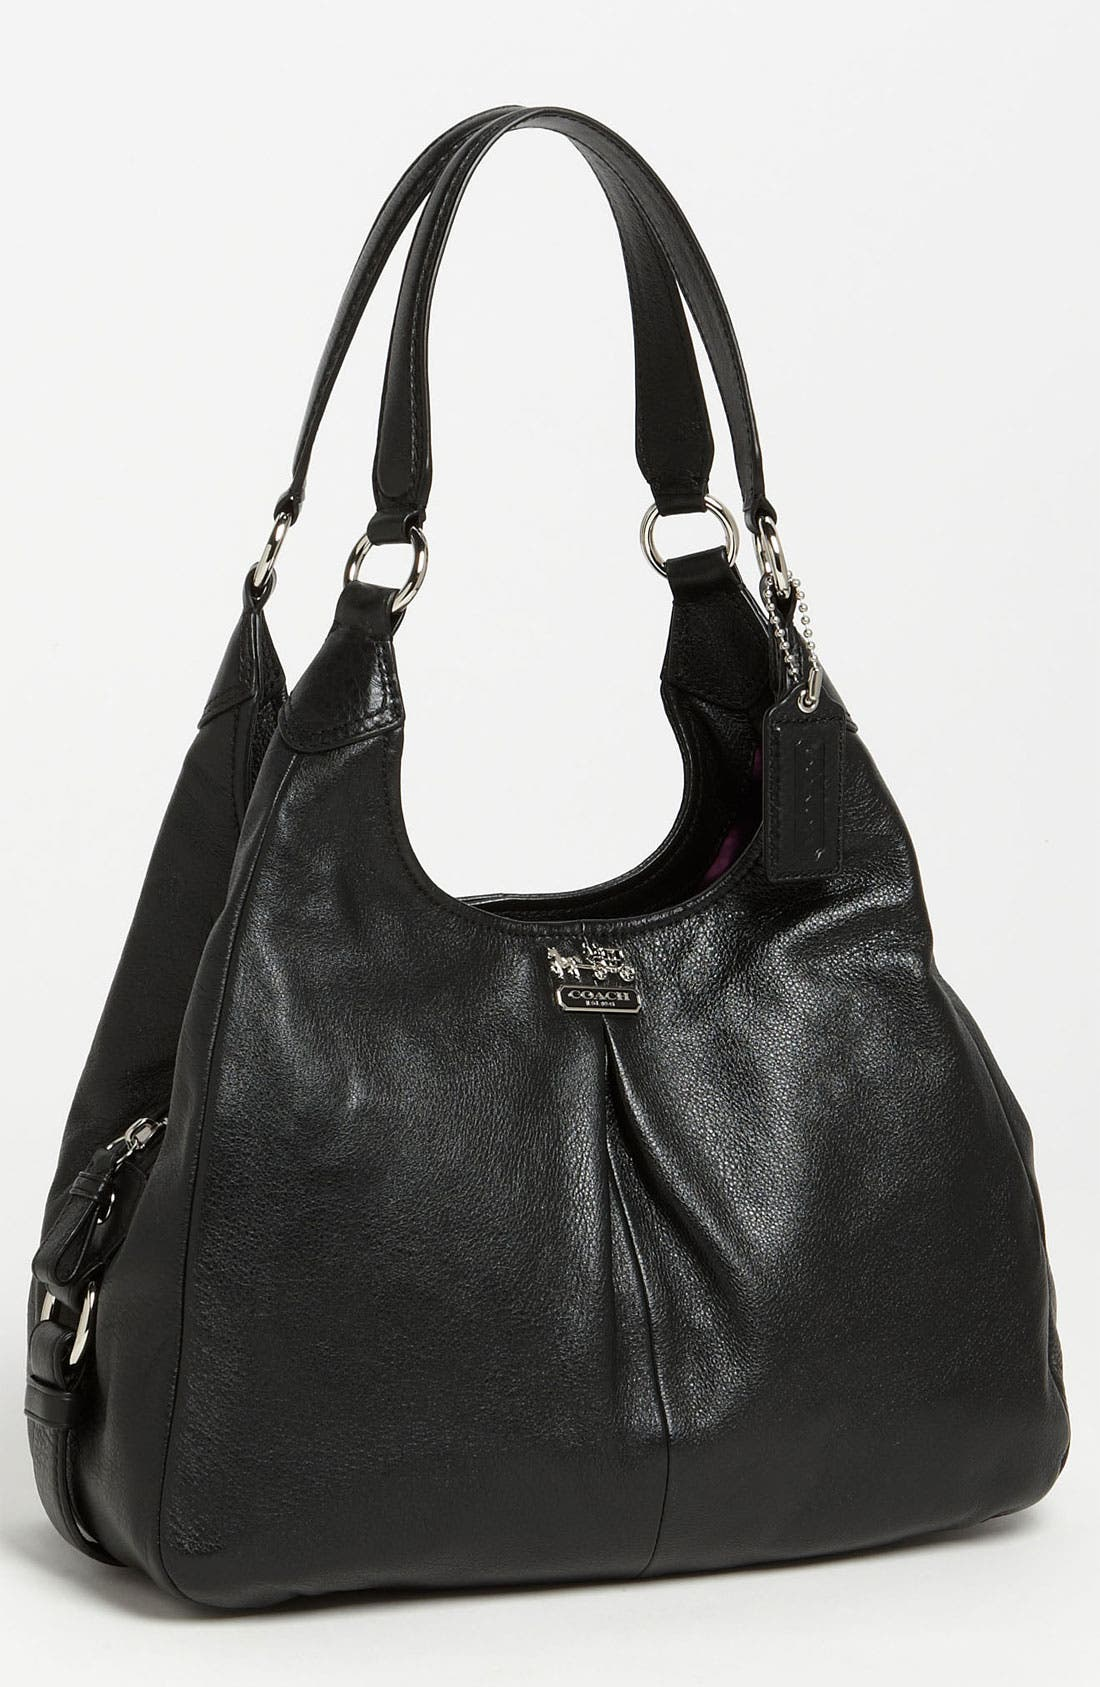 Alternate Image 1 Selected - COACH 'Madison - Maggie' Leather Hobo